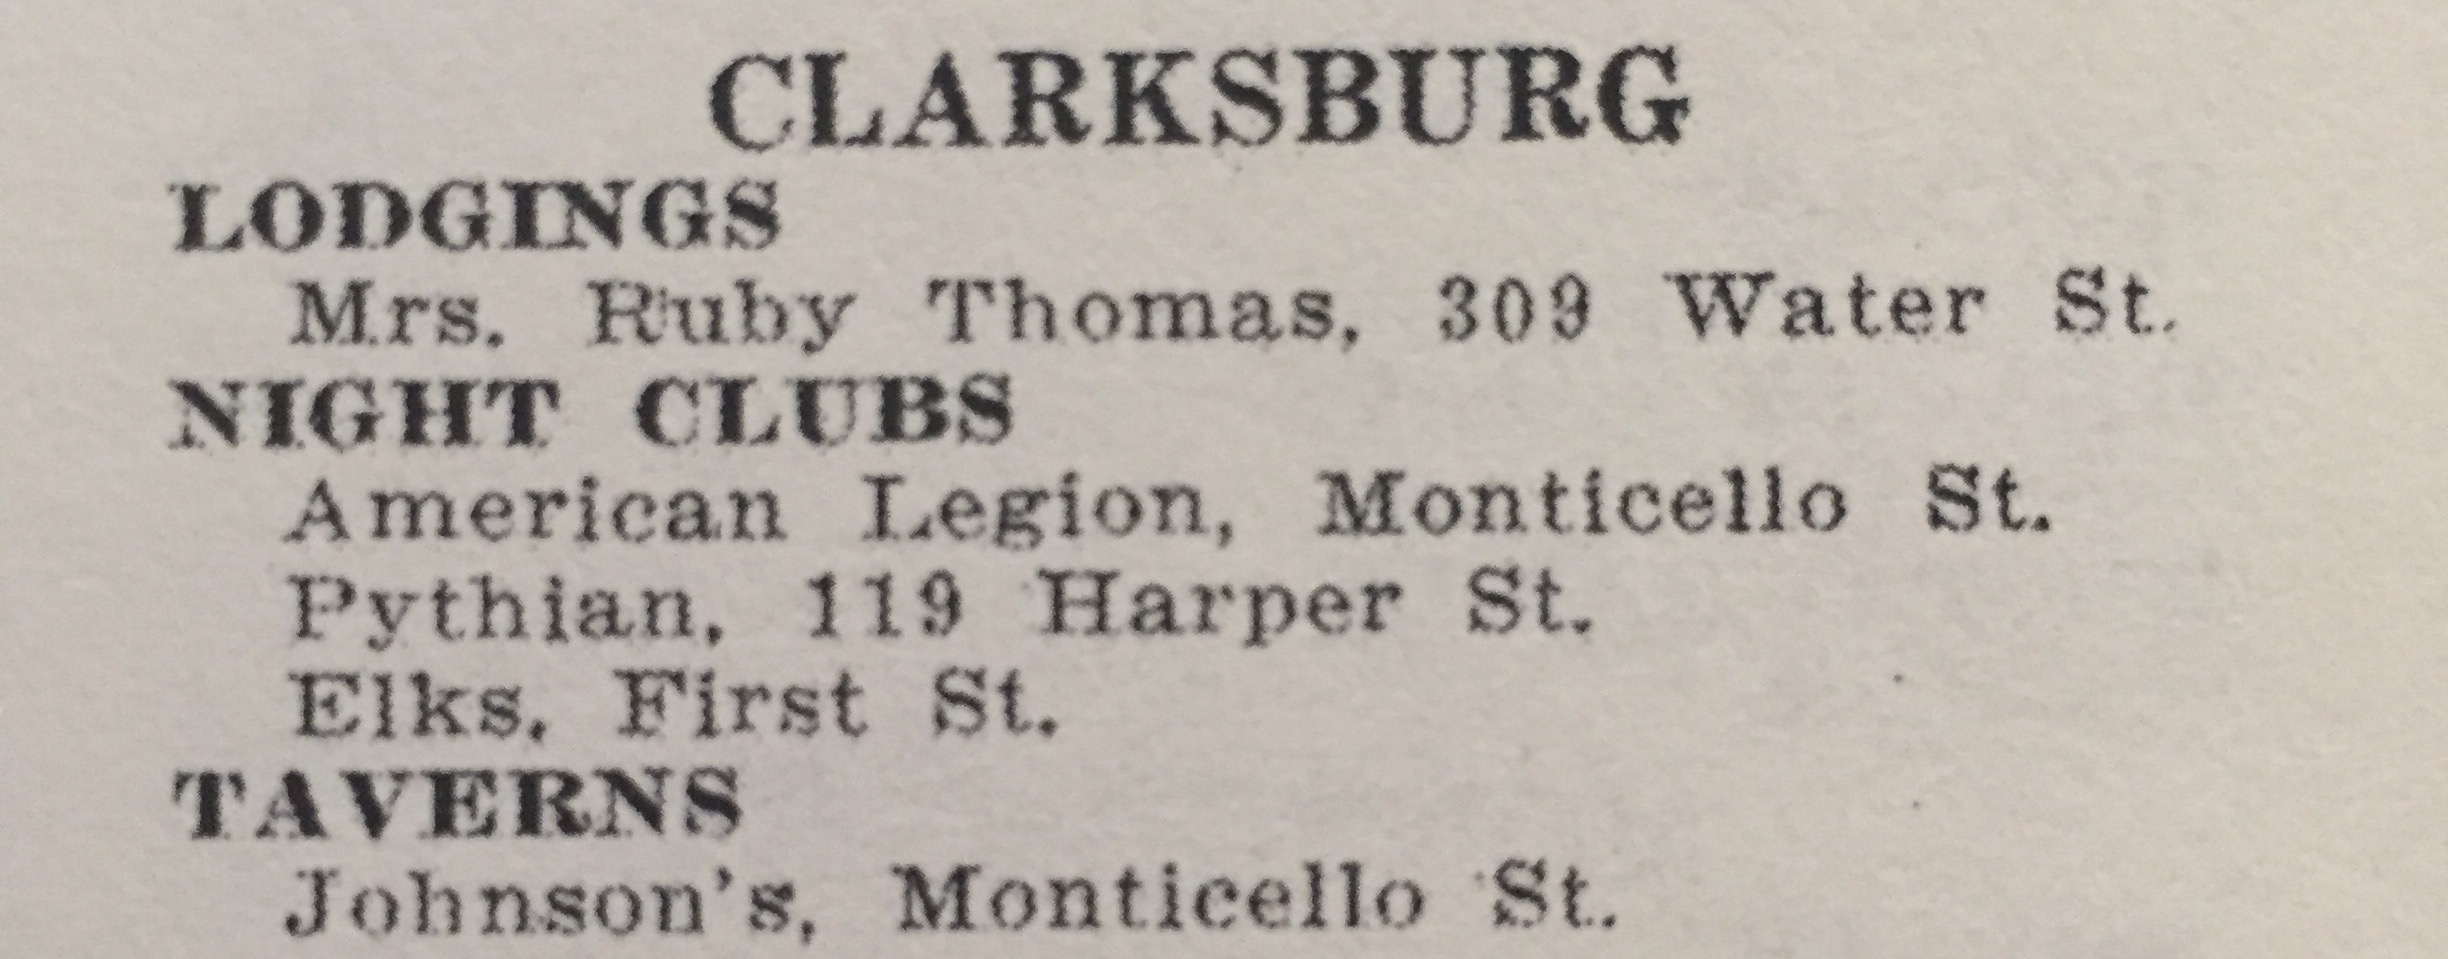 Other listings in the Clarksburg area found in the NMGB (1954 Edition).